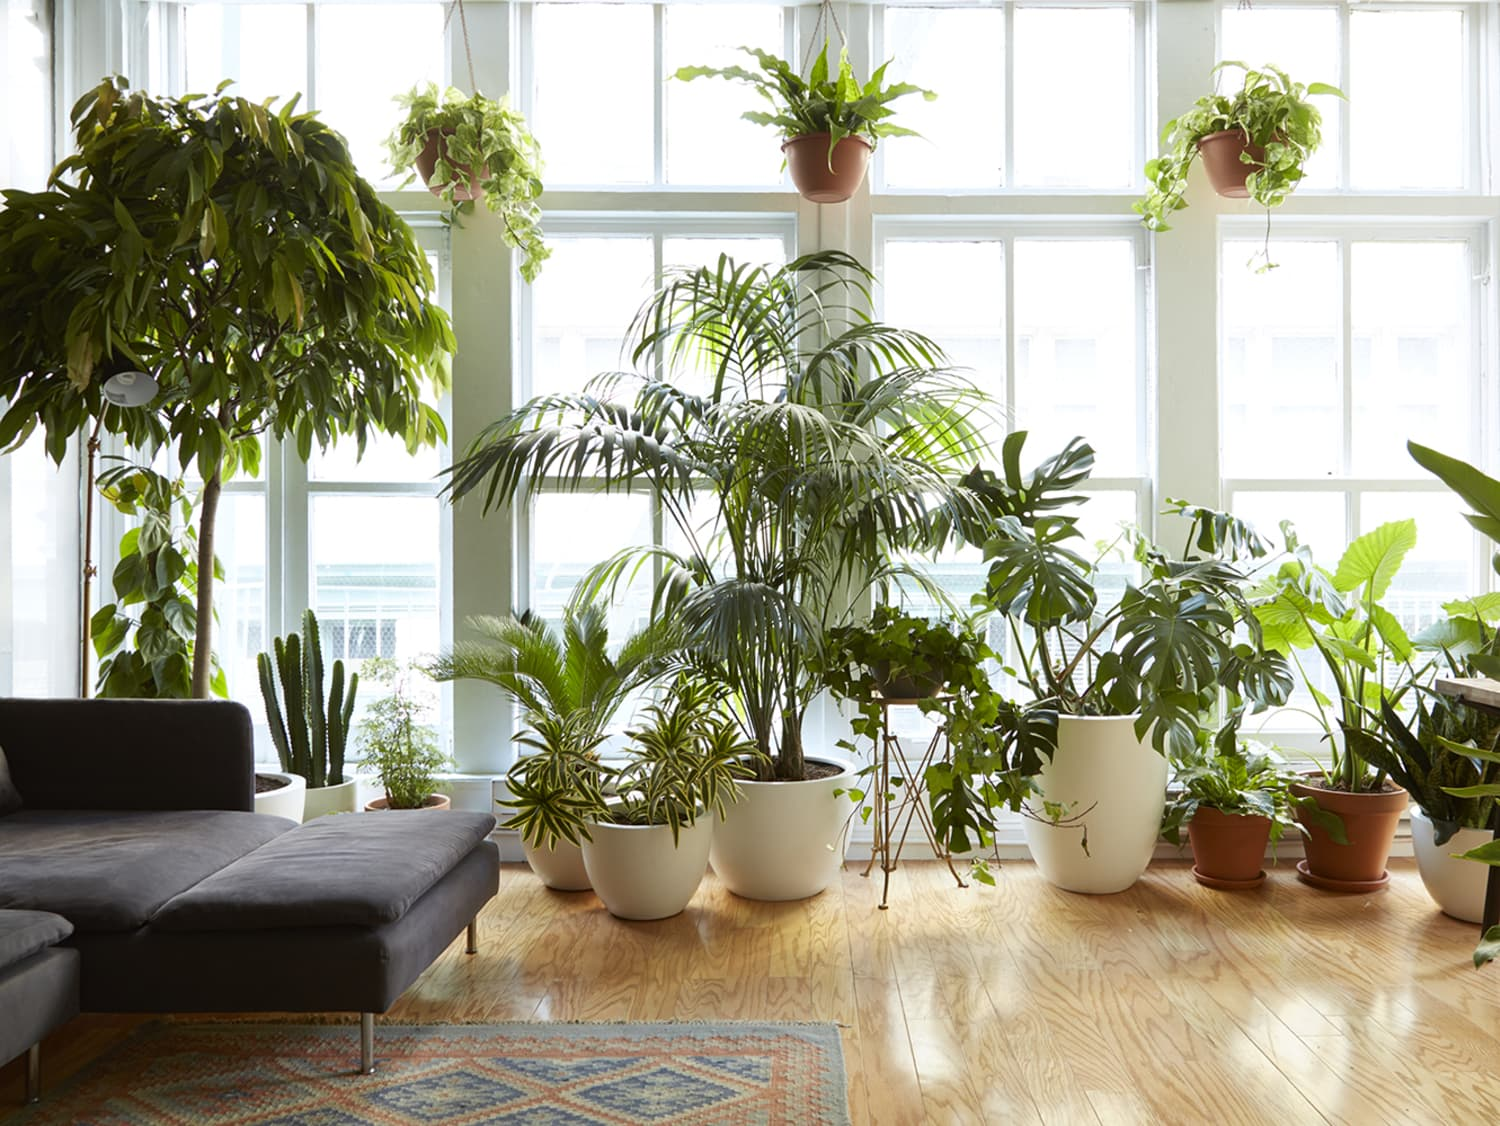 8 Houseplants that Can Survive Urban Apartments, Low Light and Under-Watering